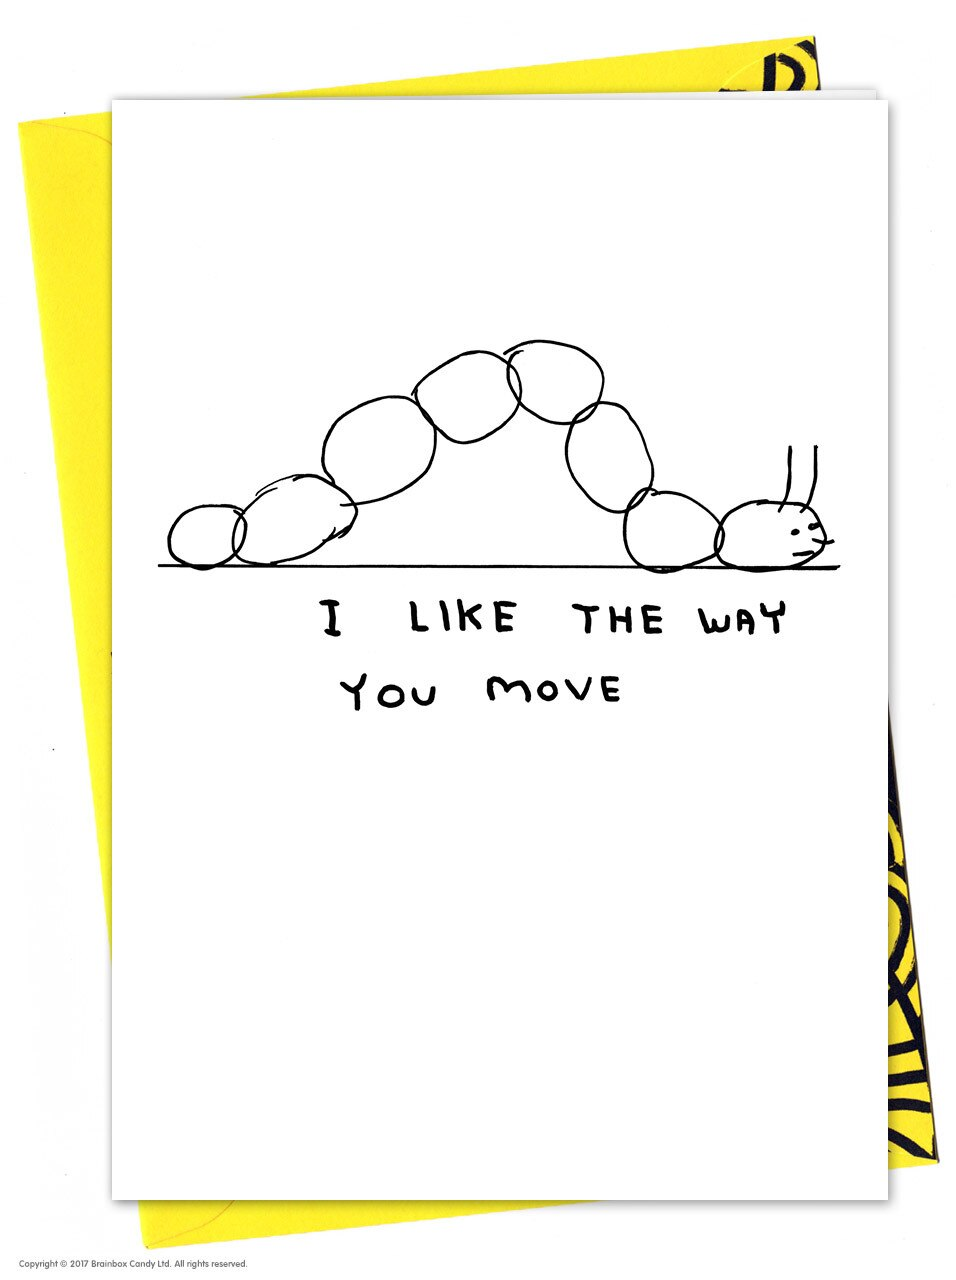 David Shrigley 'I Like The Way You Move'